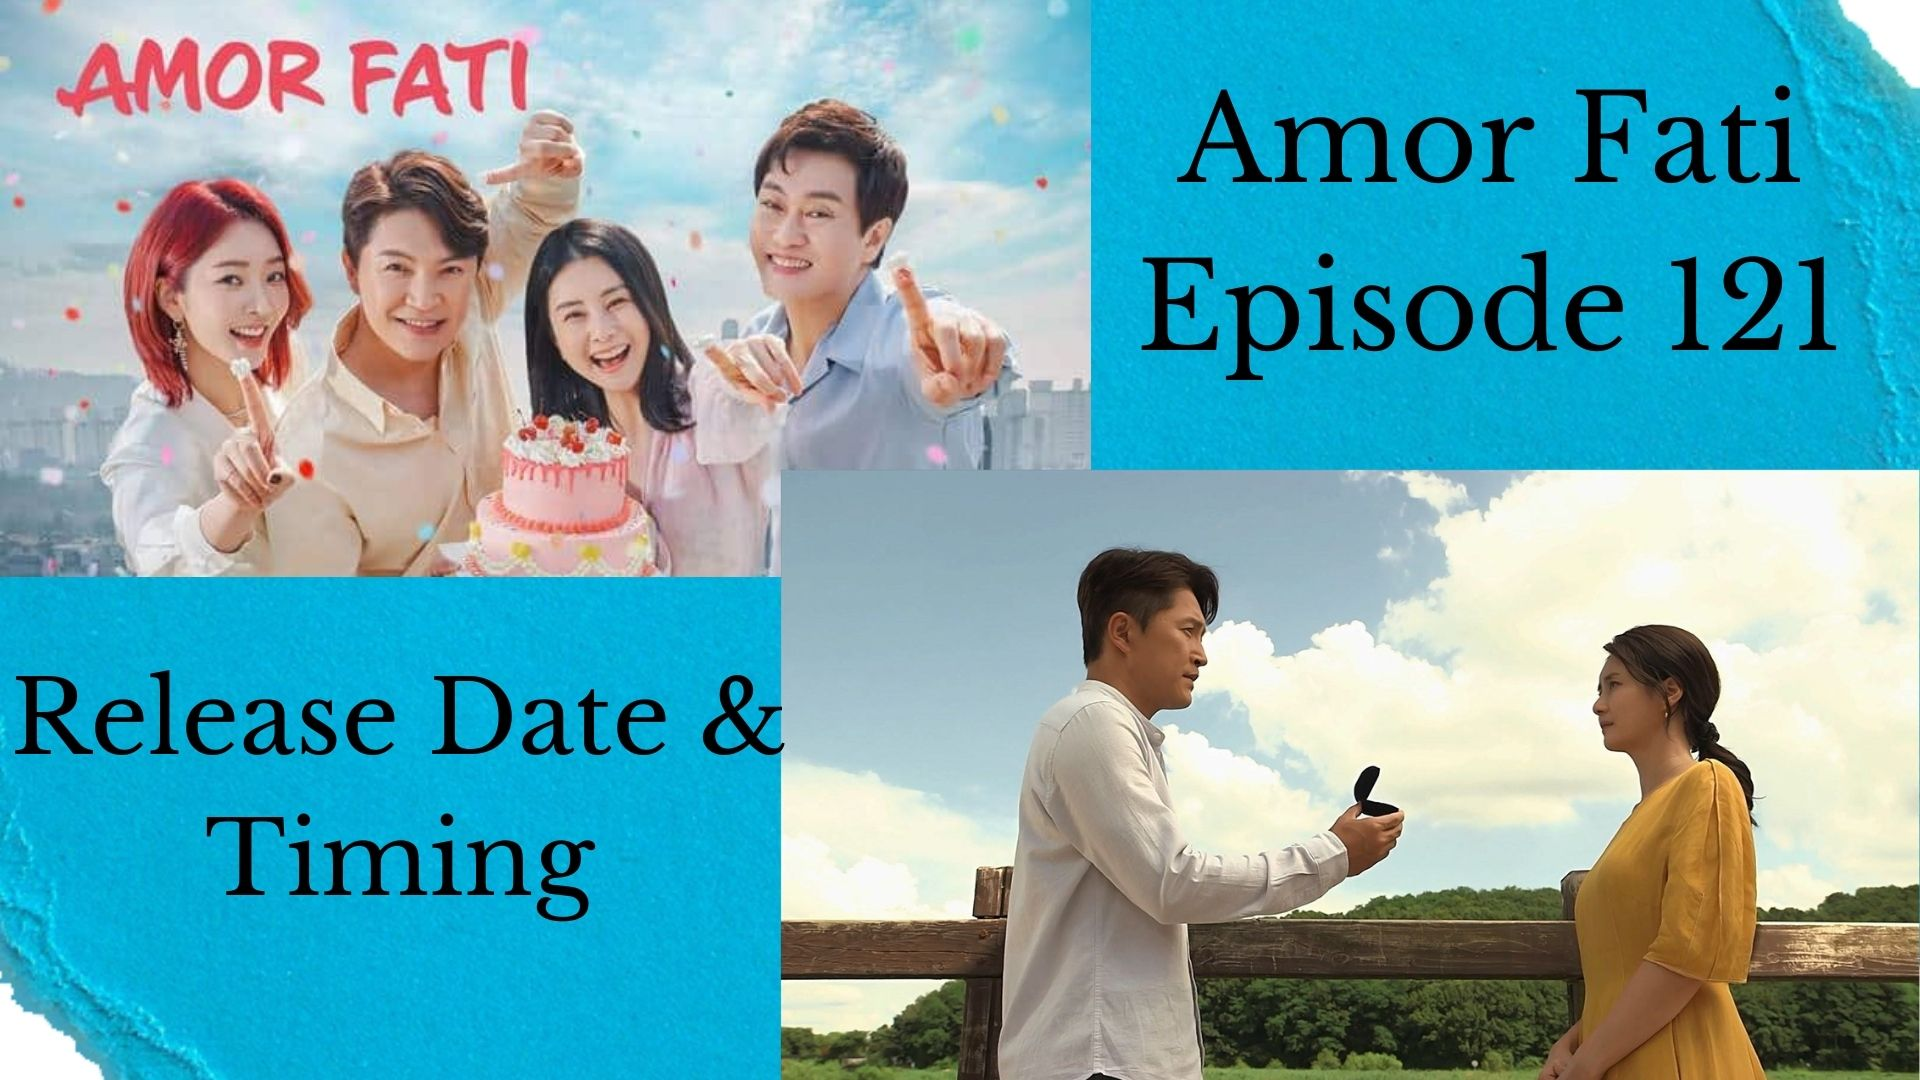 Amor Fati Episode 121: Release Date, Time, and Where to Watch?